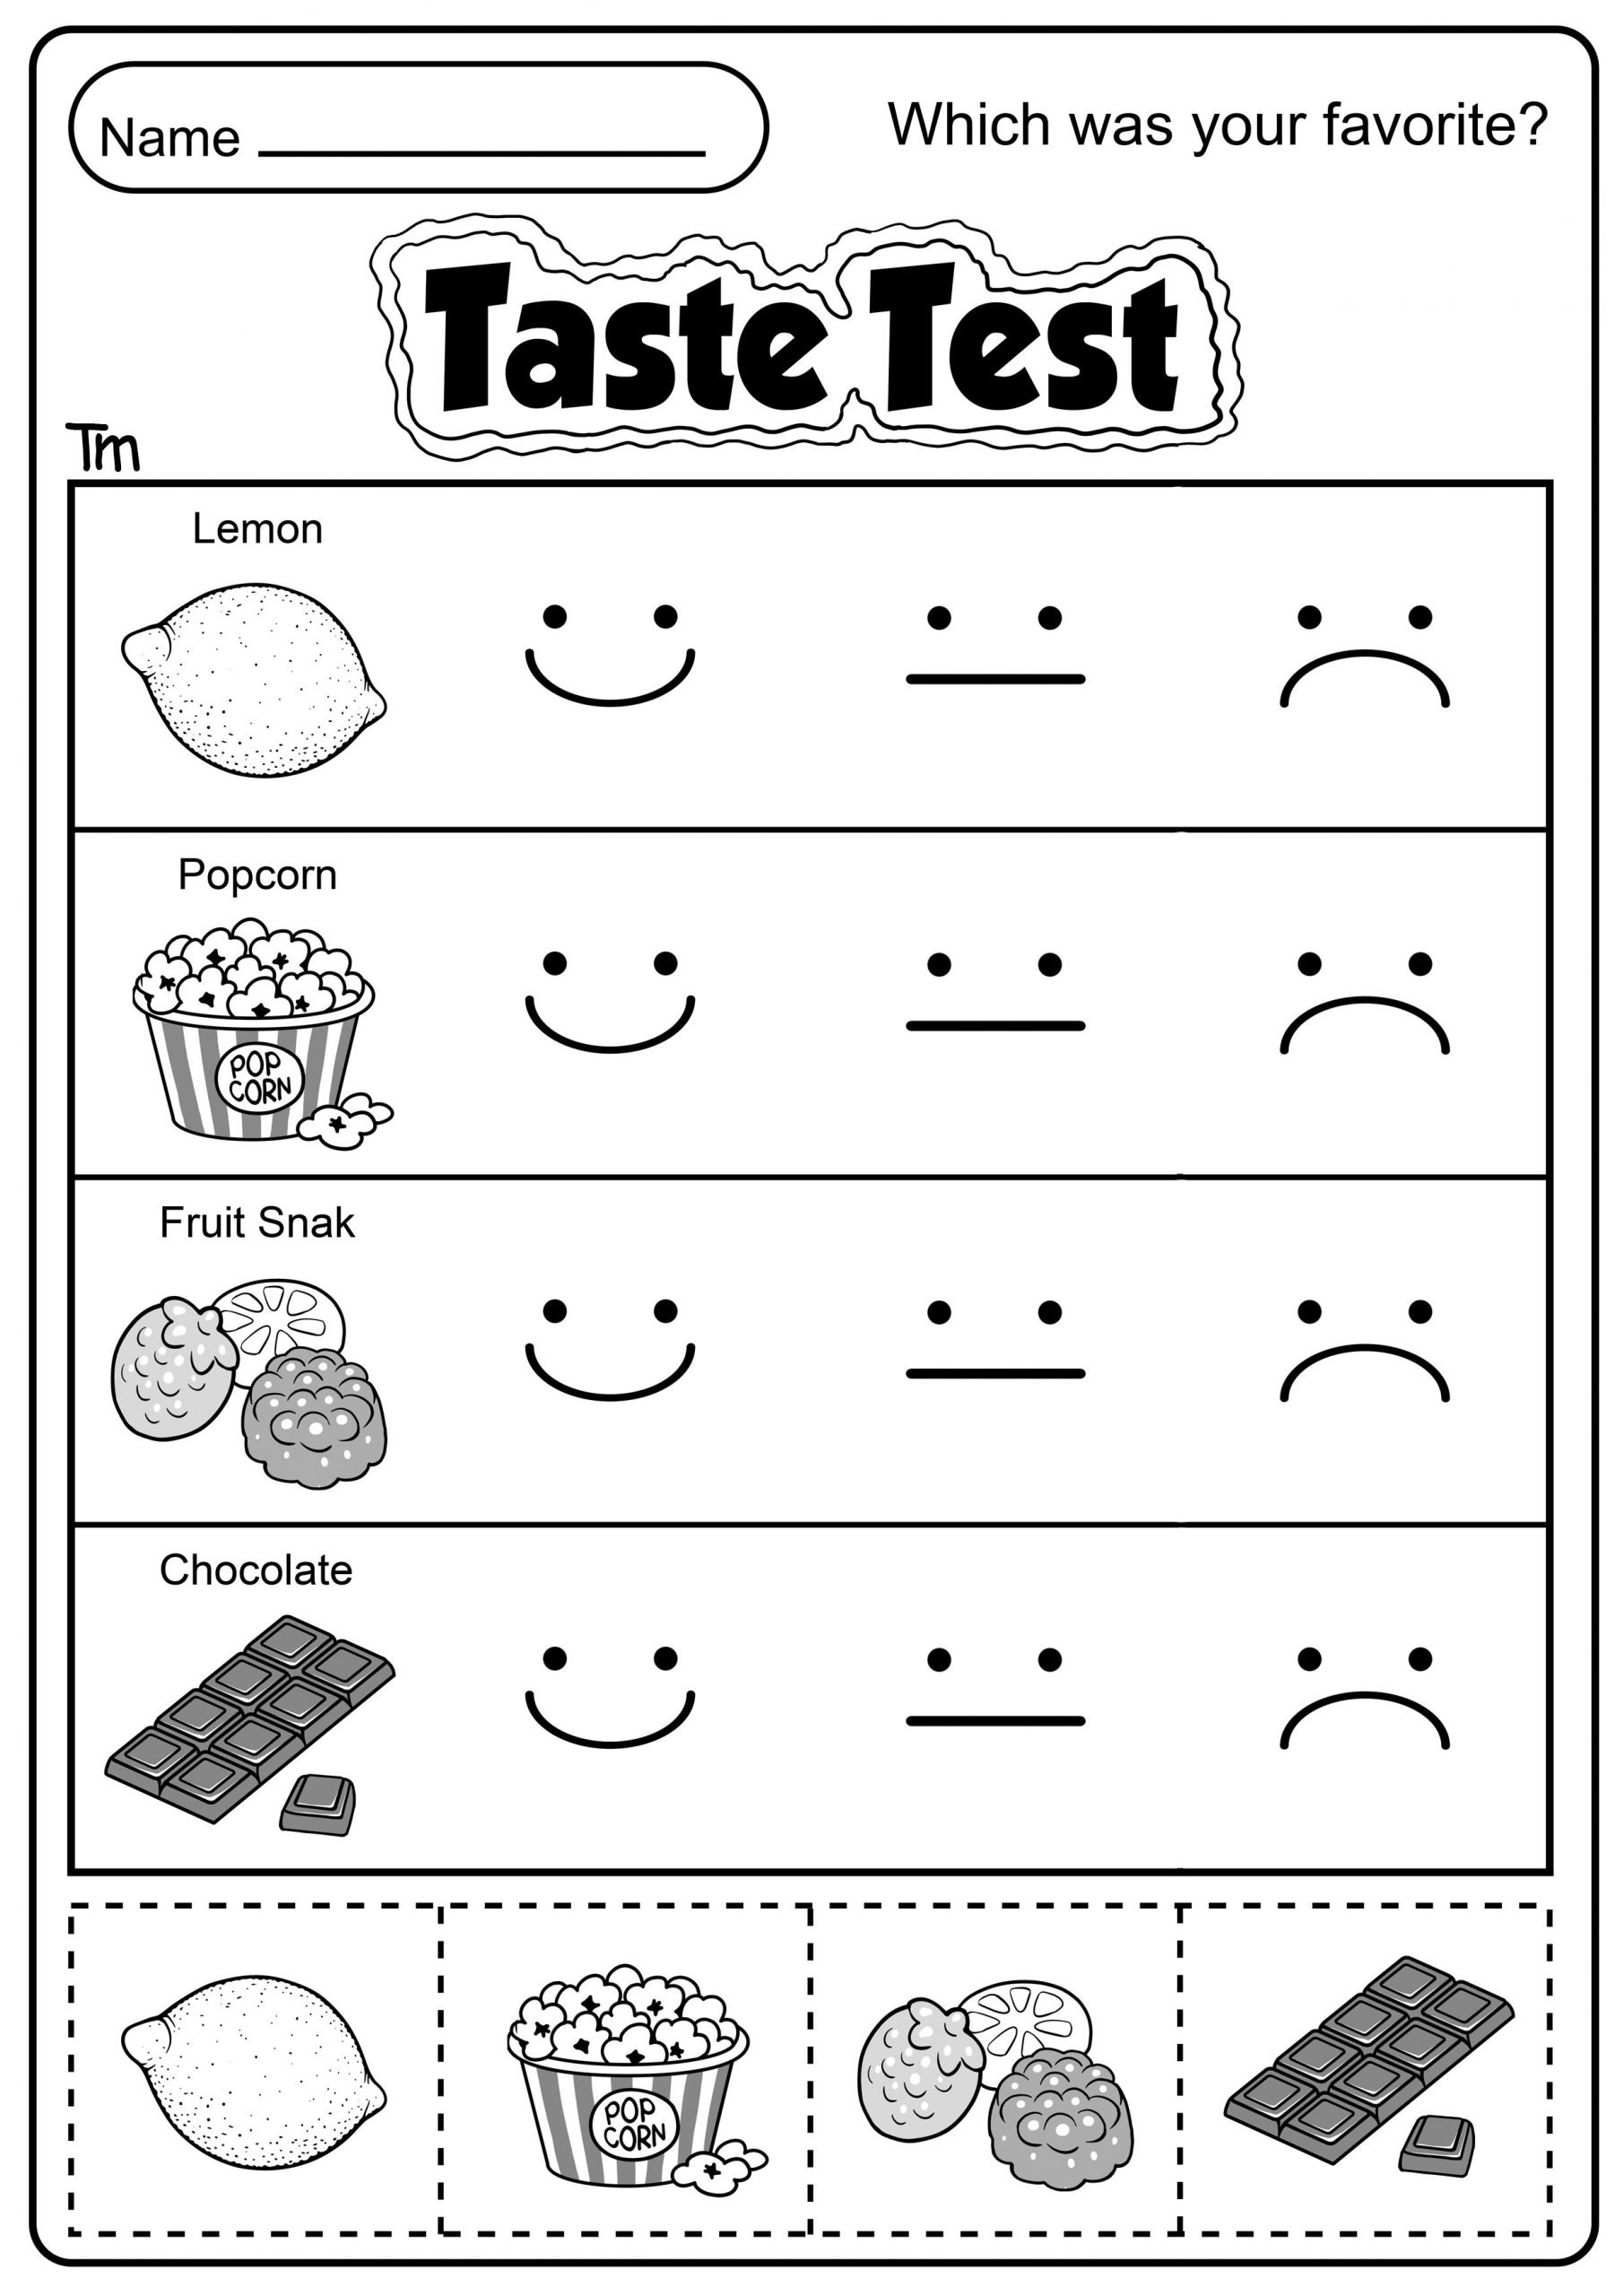 The Five Senses Worksheets the Five Senses Taste Test Teachersmag